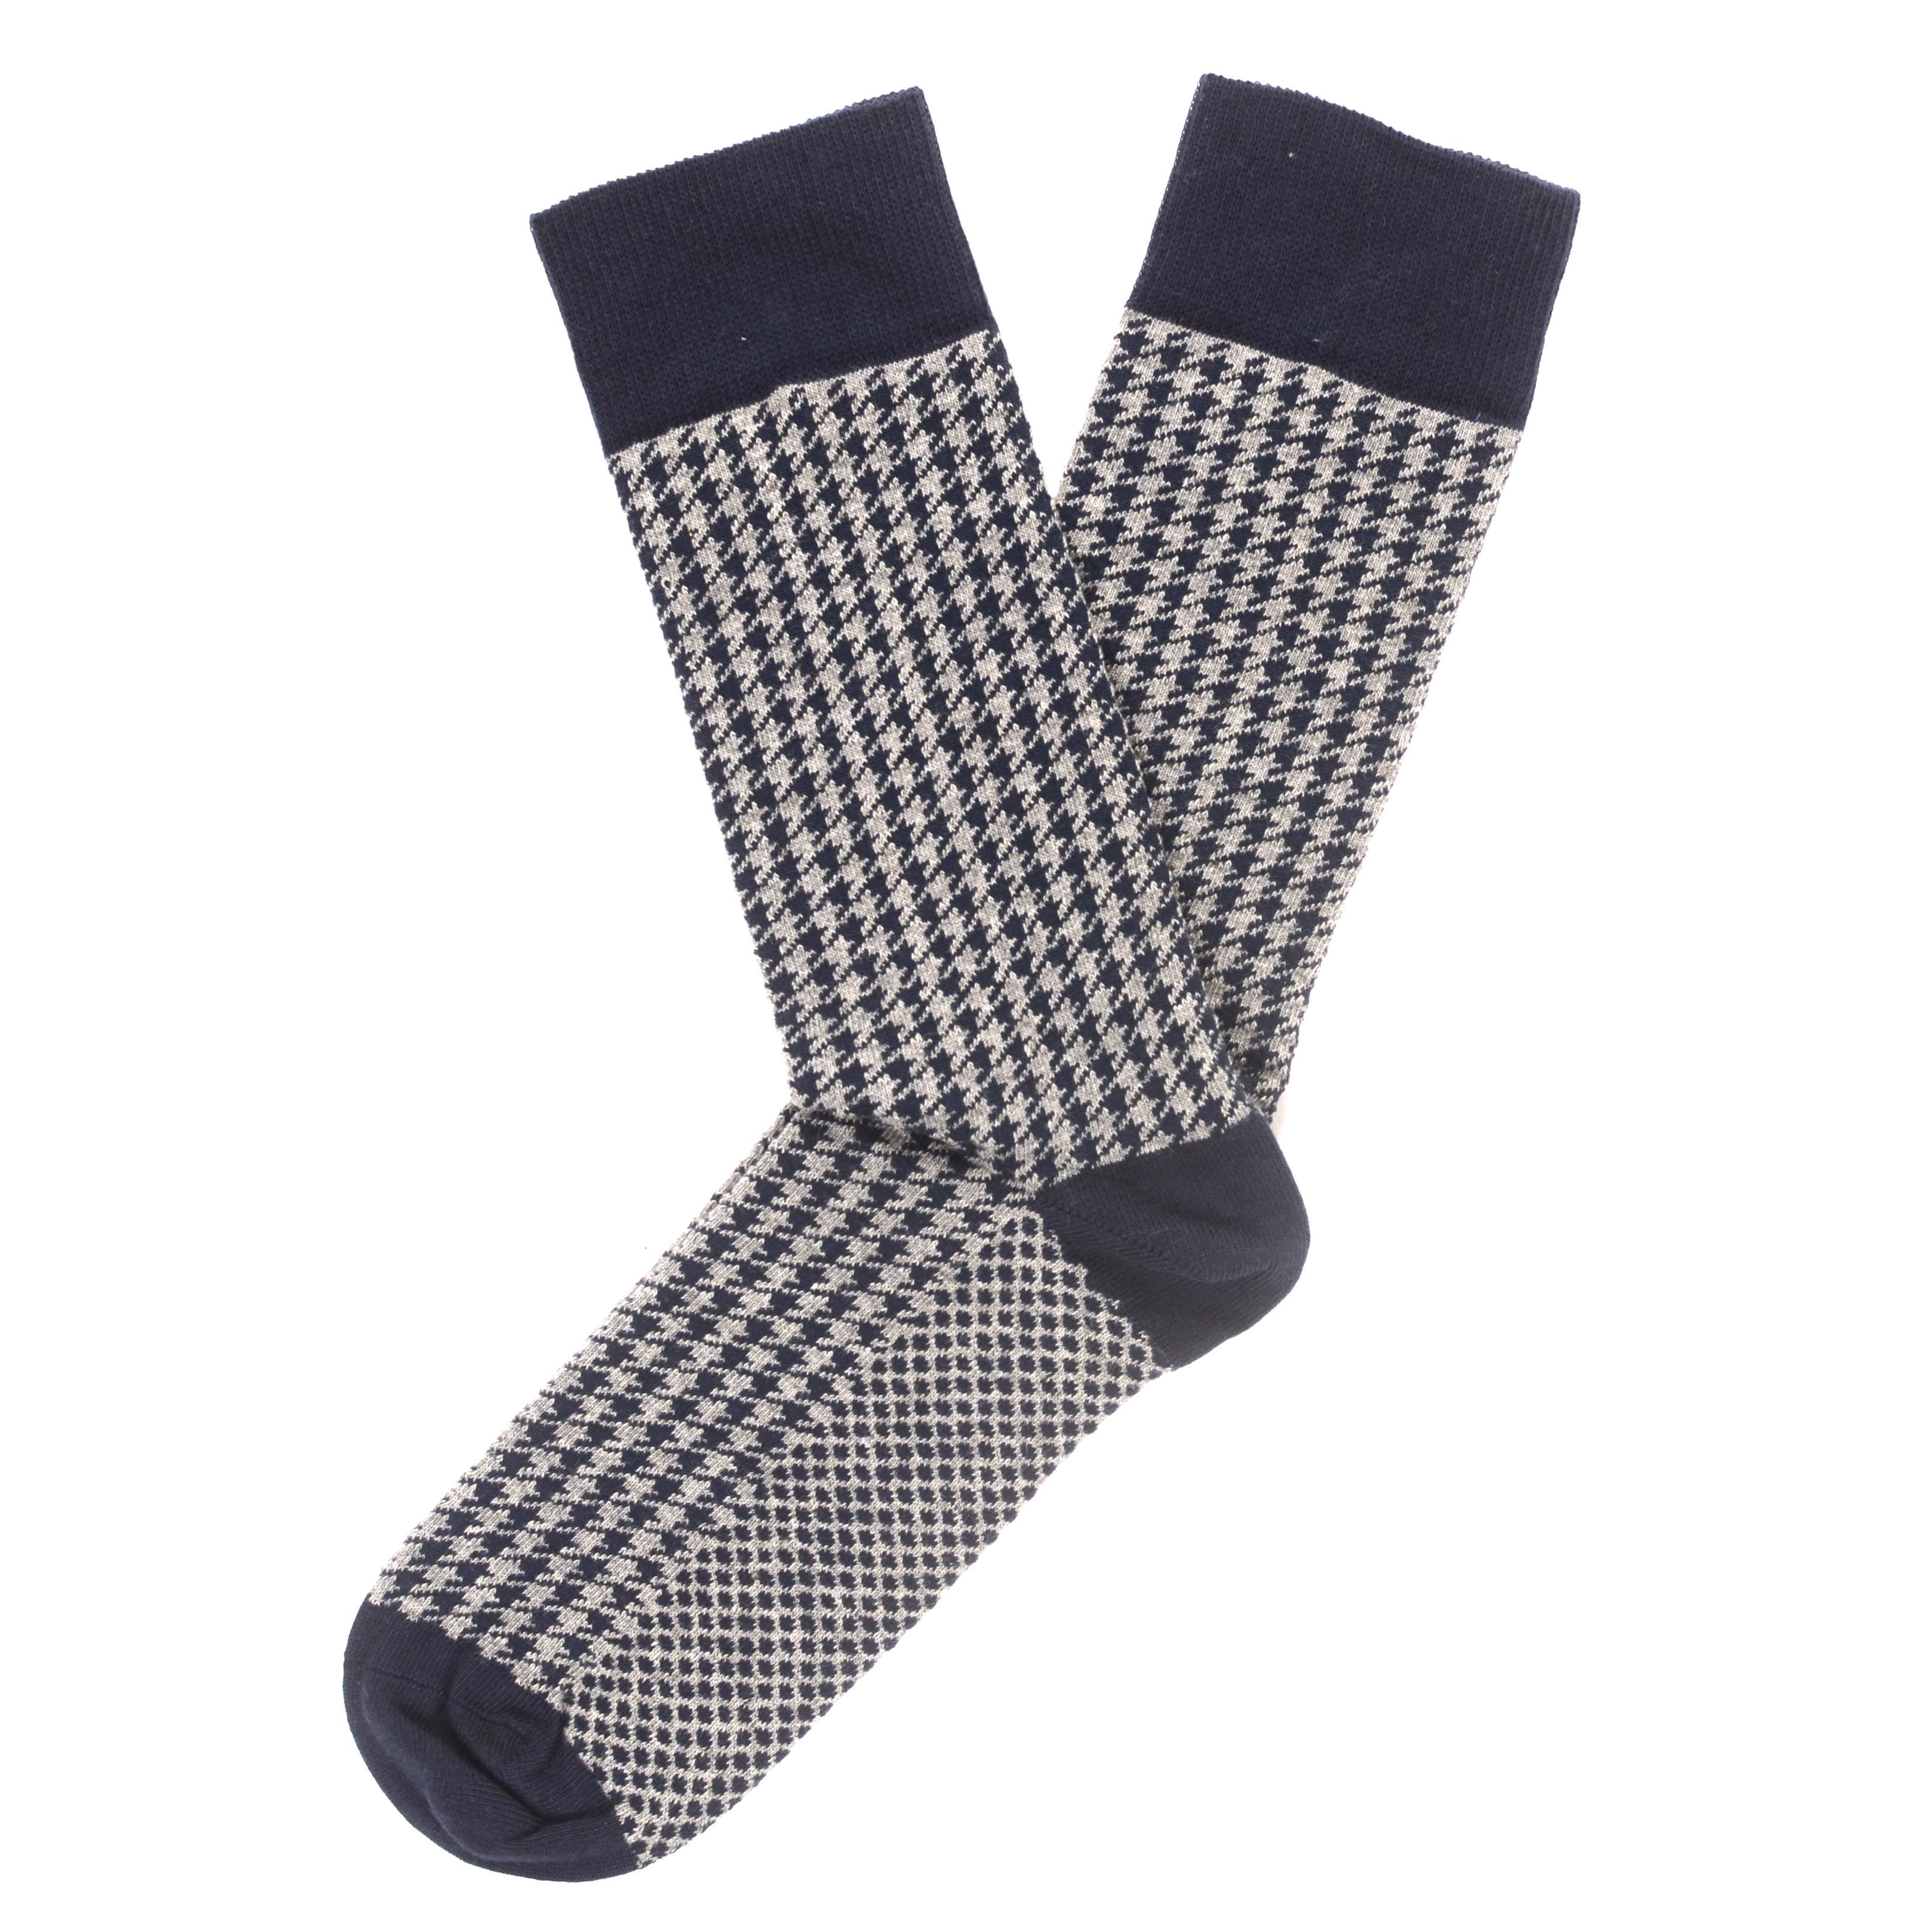 Javen | Houndstooth socks